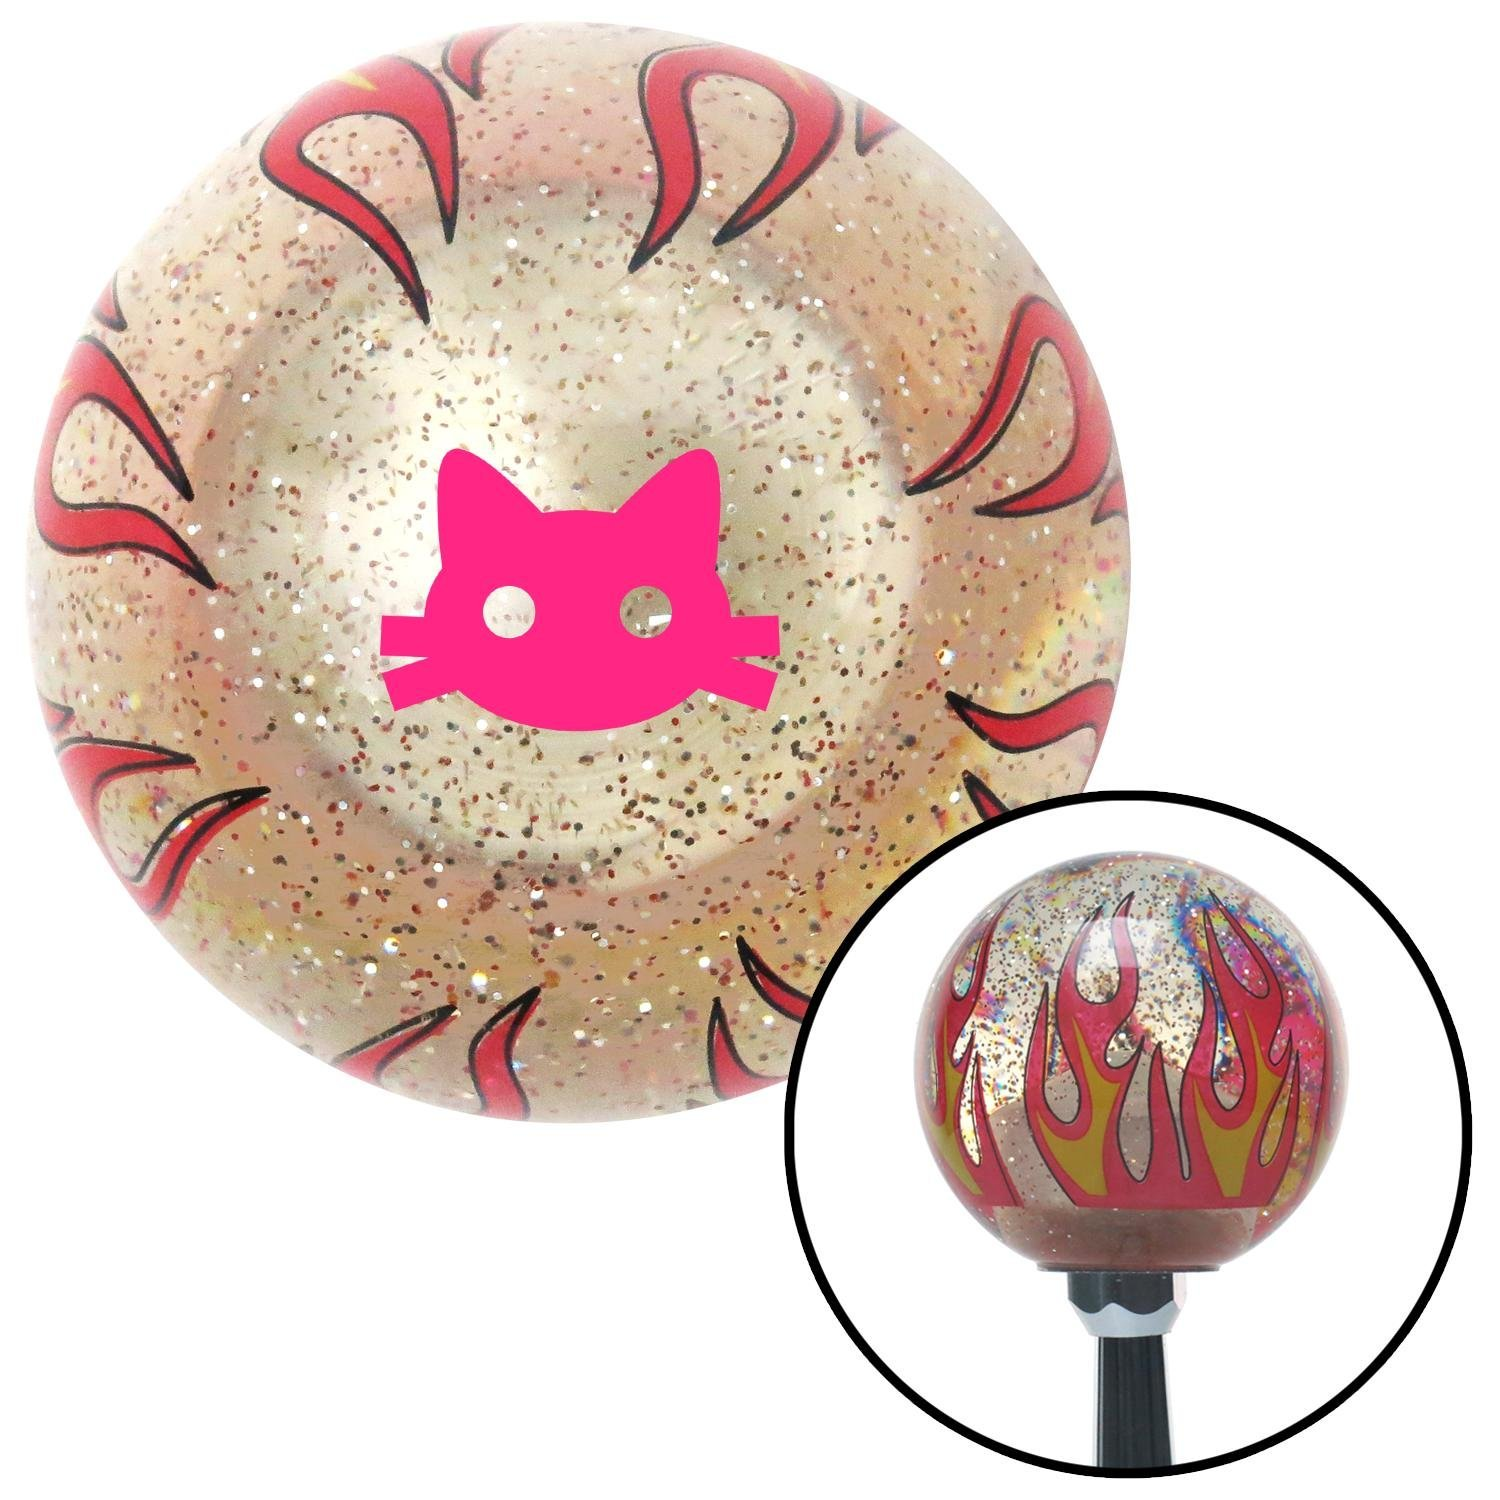 American Shifter 295174 Shift Knob Pink Cat Silhouette 2 Clear Flame Metal Flake with M16 x 1.5 Insert